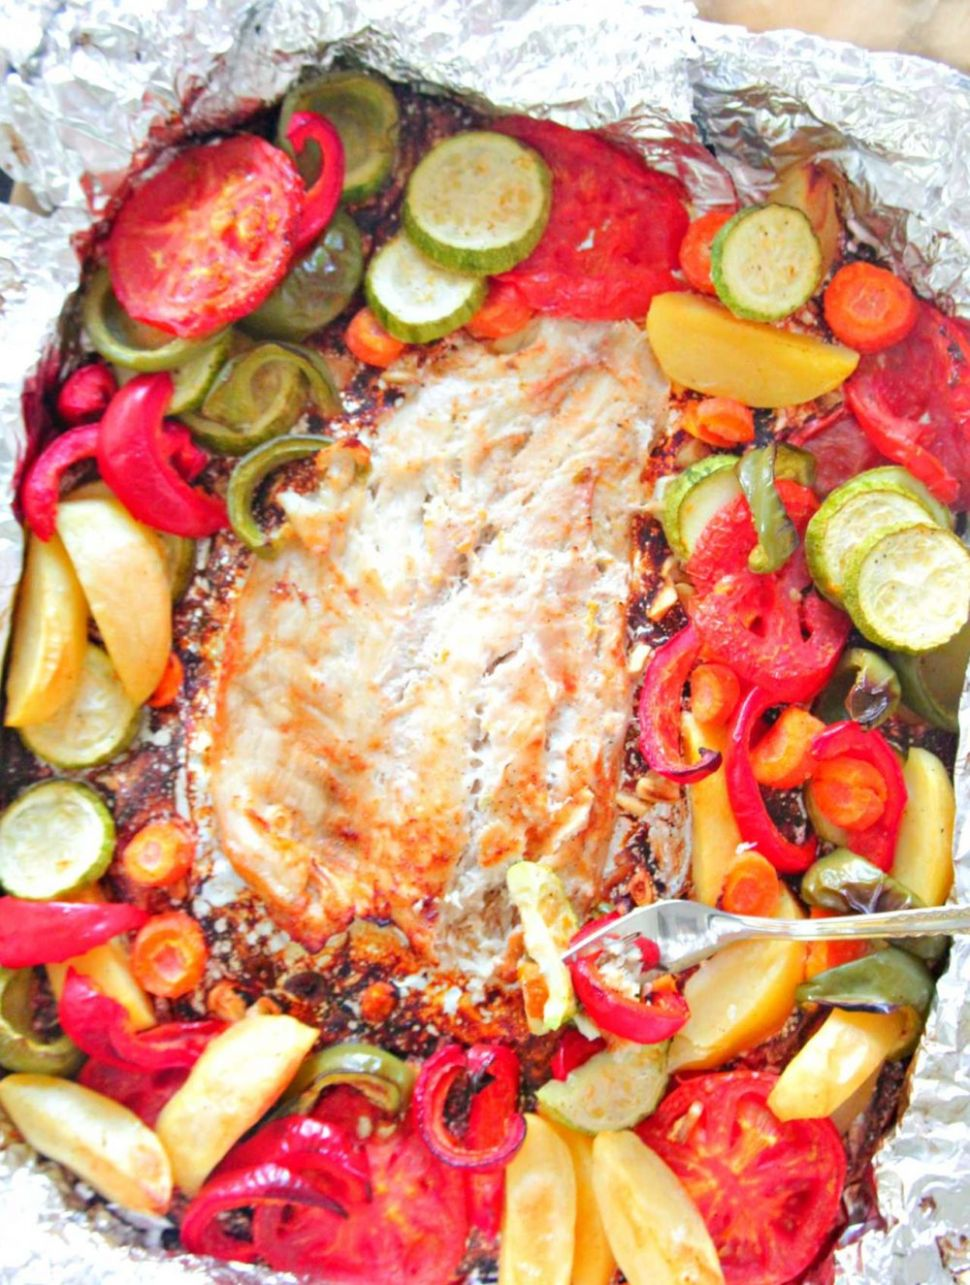 Baked Fish In Foil With Vegetables - Recipe Fish On The Grill In Foil